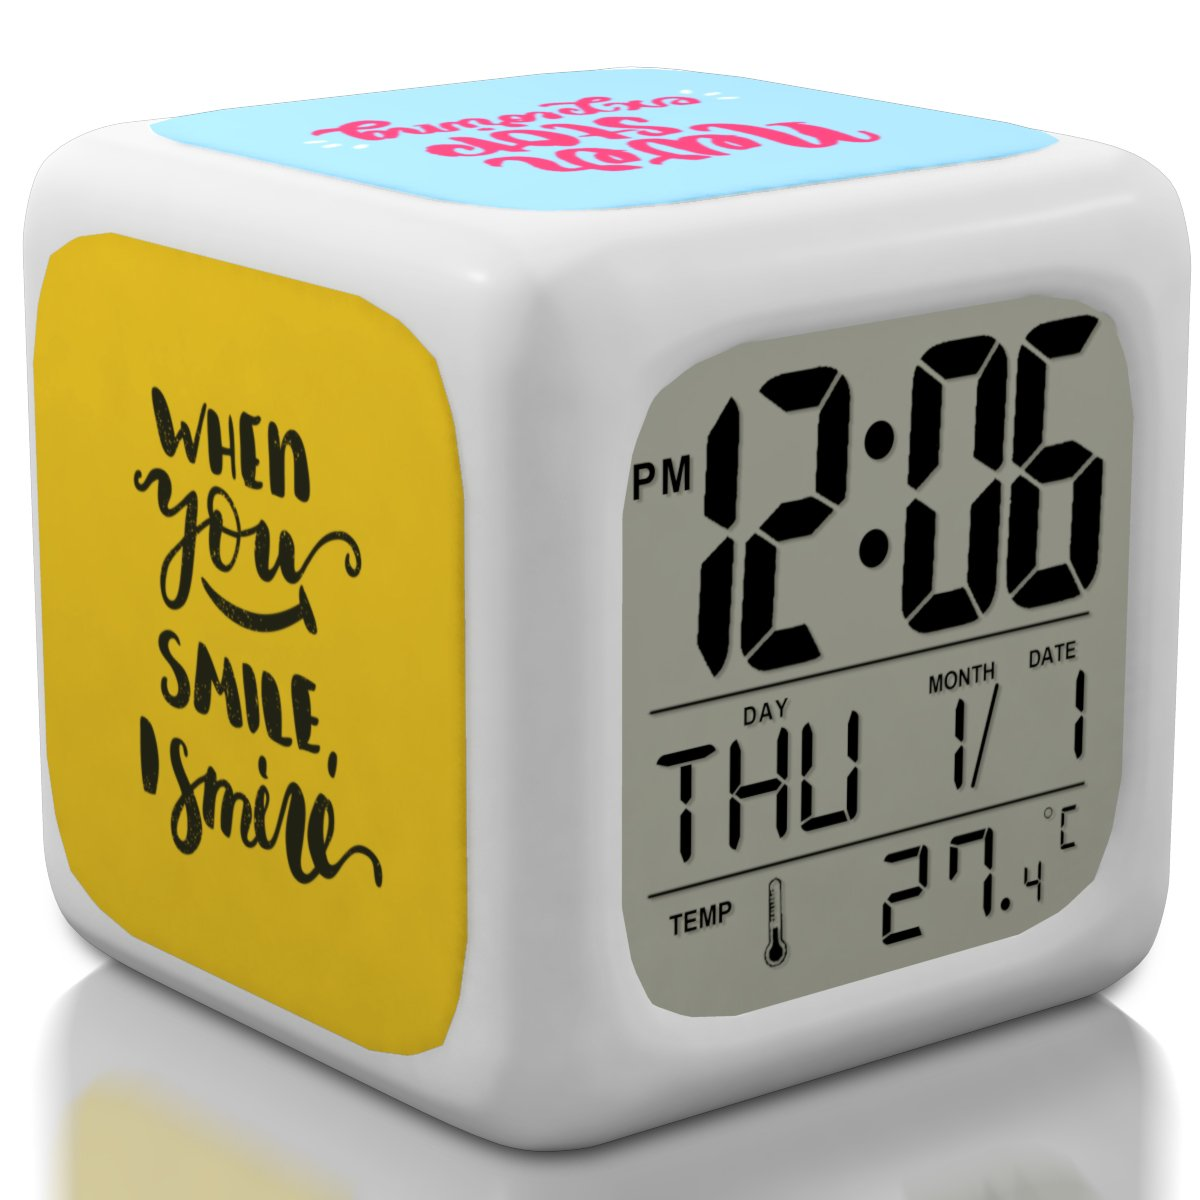 Alarm Clock for Kids and Teen Bedroom, Boys or Girls, Heavy Sleepers. Cool and Cute Bedside Digital Display Small Clocks for Travel and Kid Bedrooms (New 2018 Edition) PLB